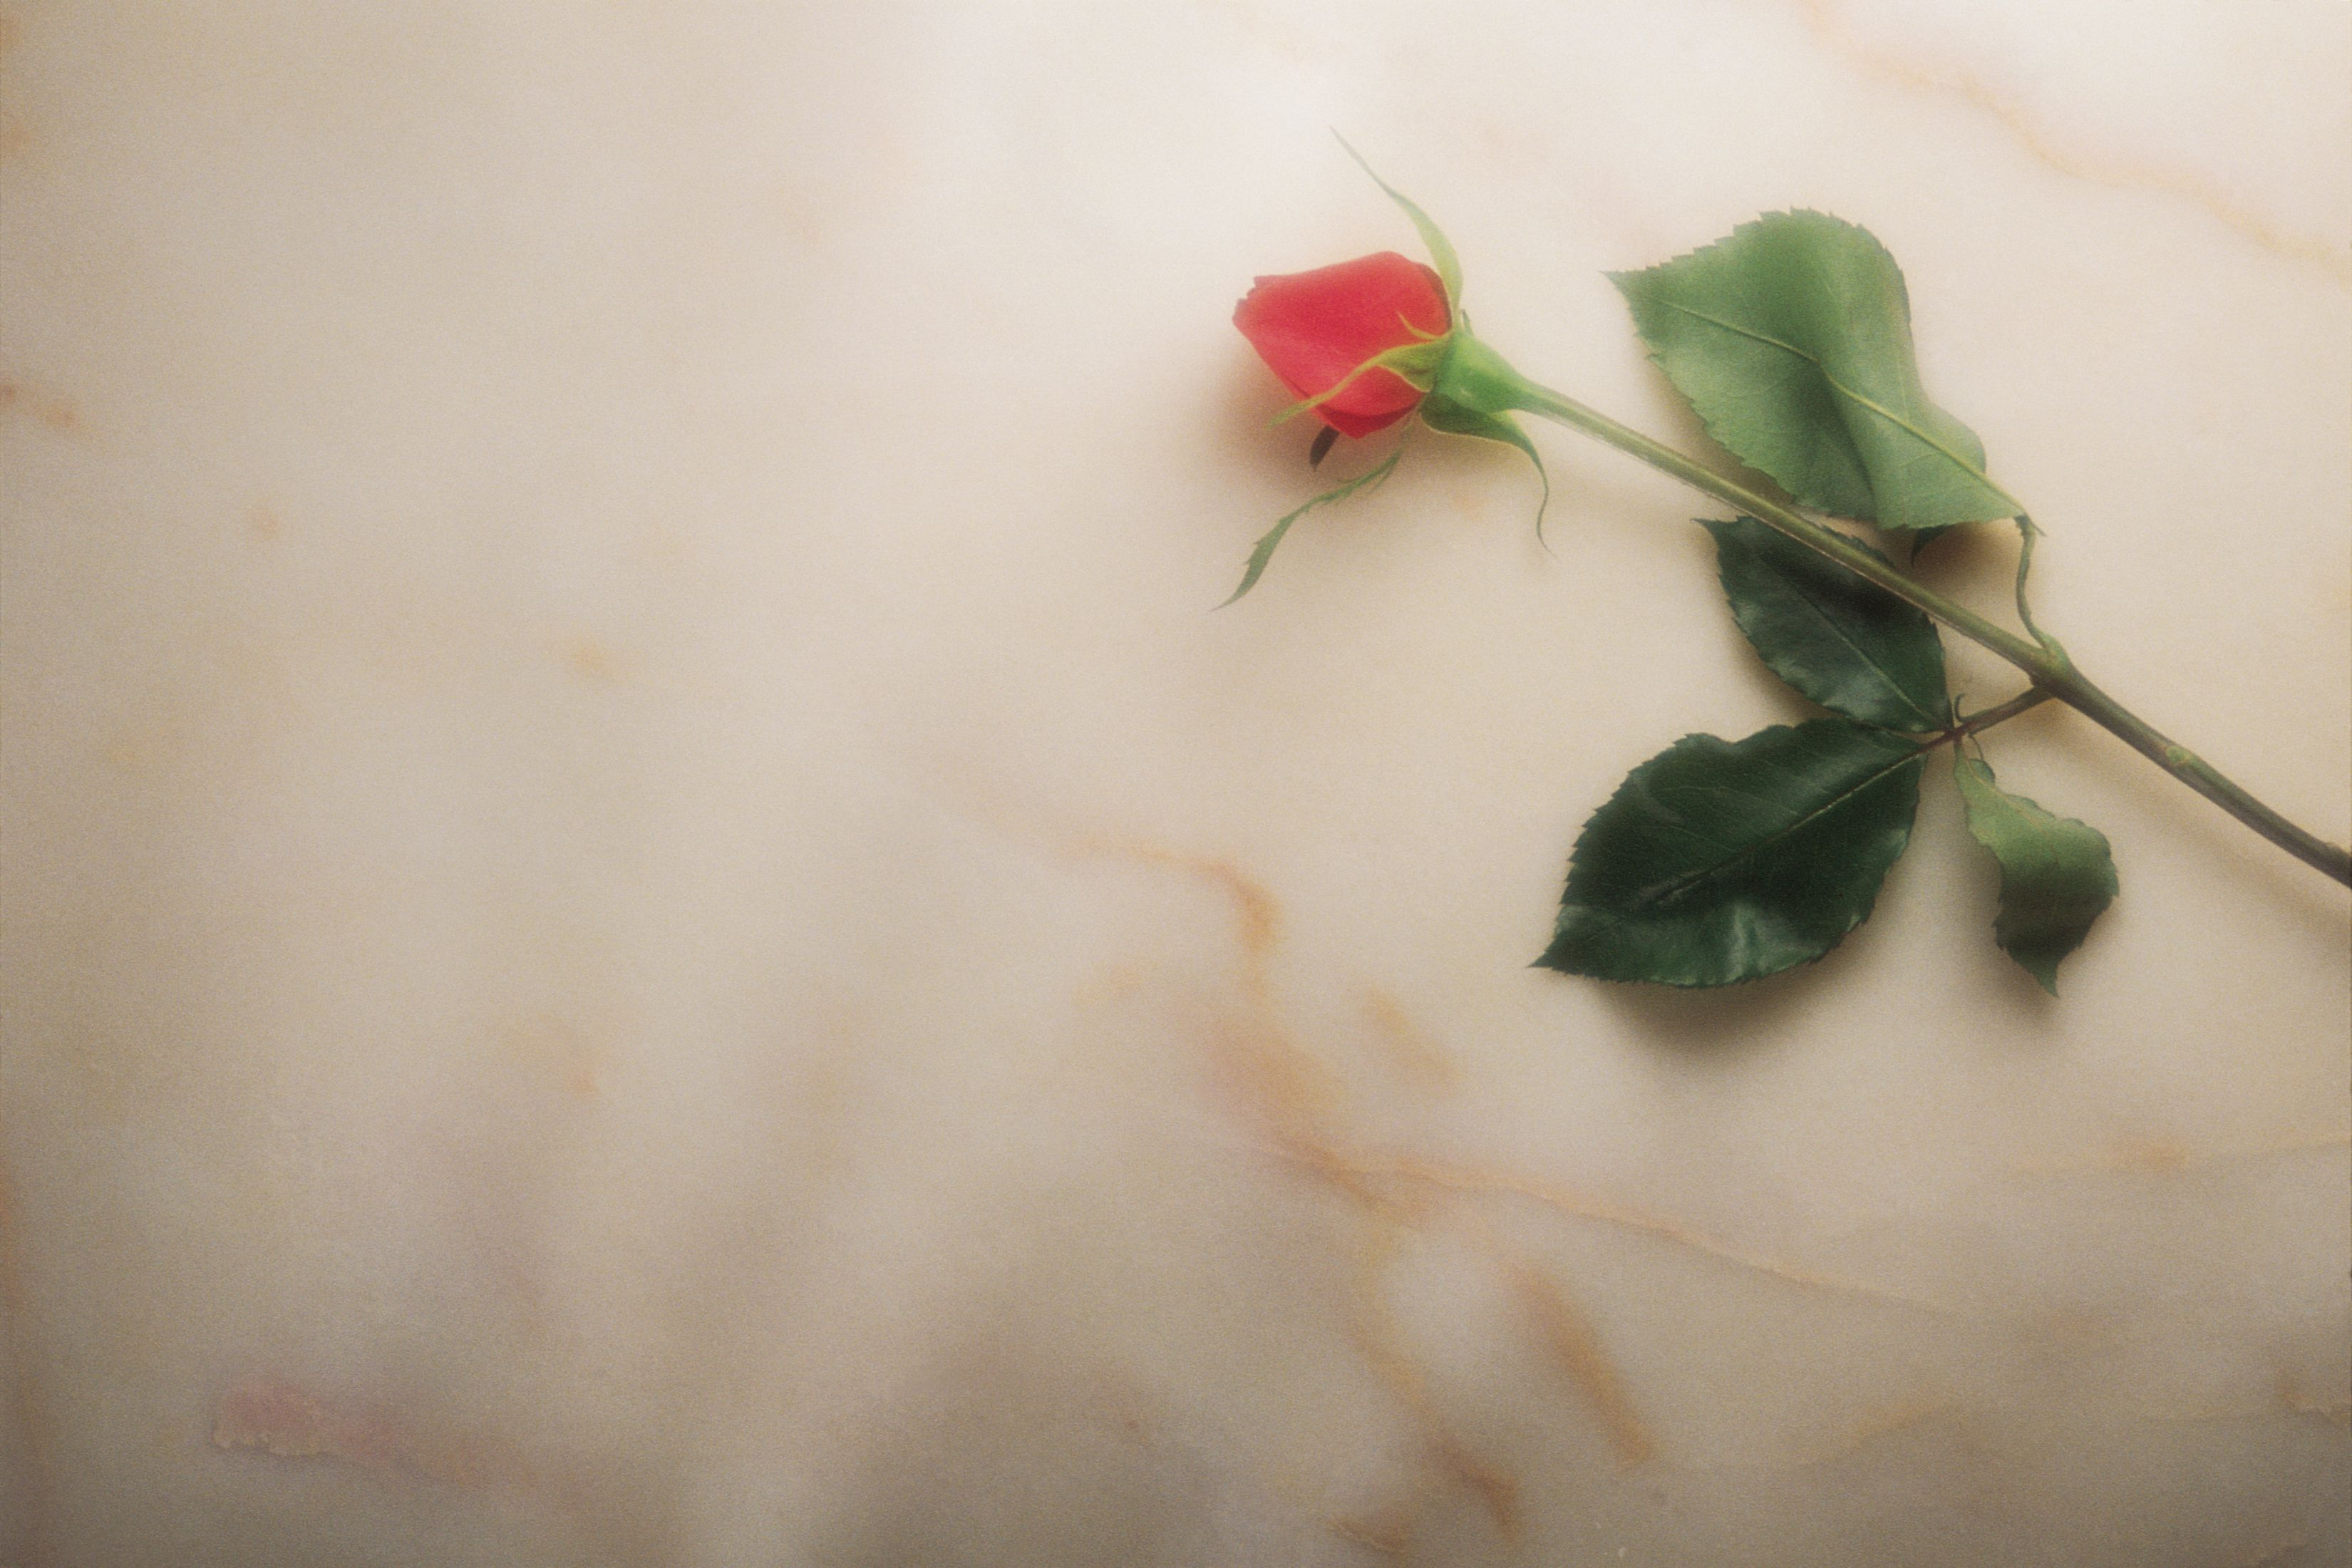 Funeral Background submited images 3300x2200